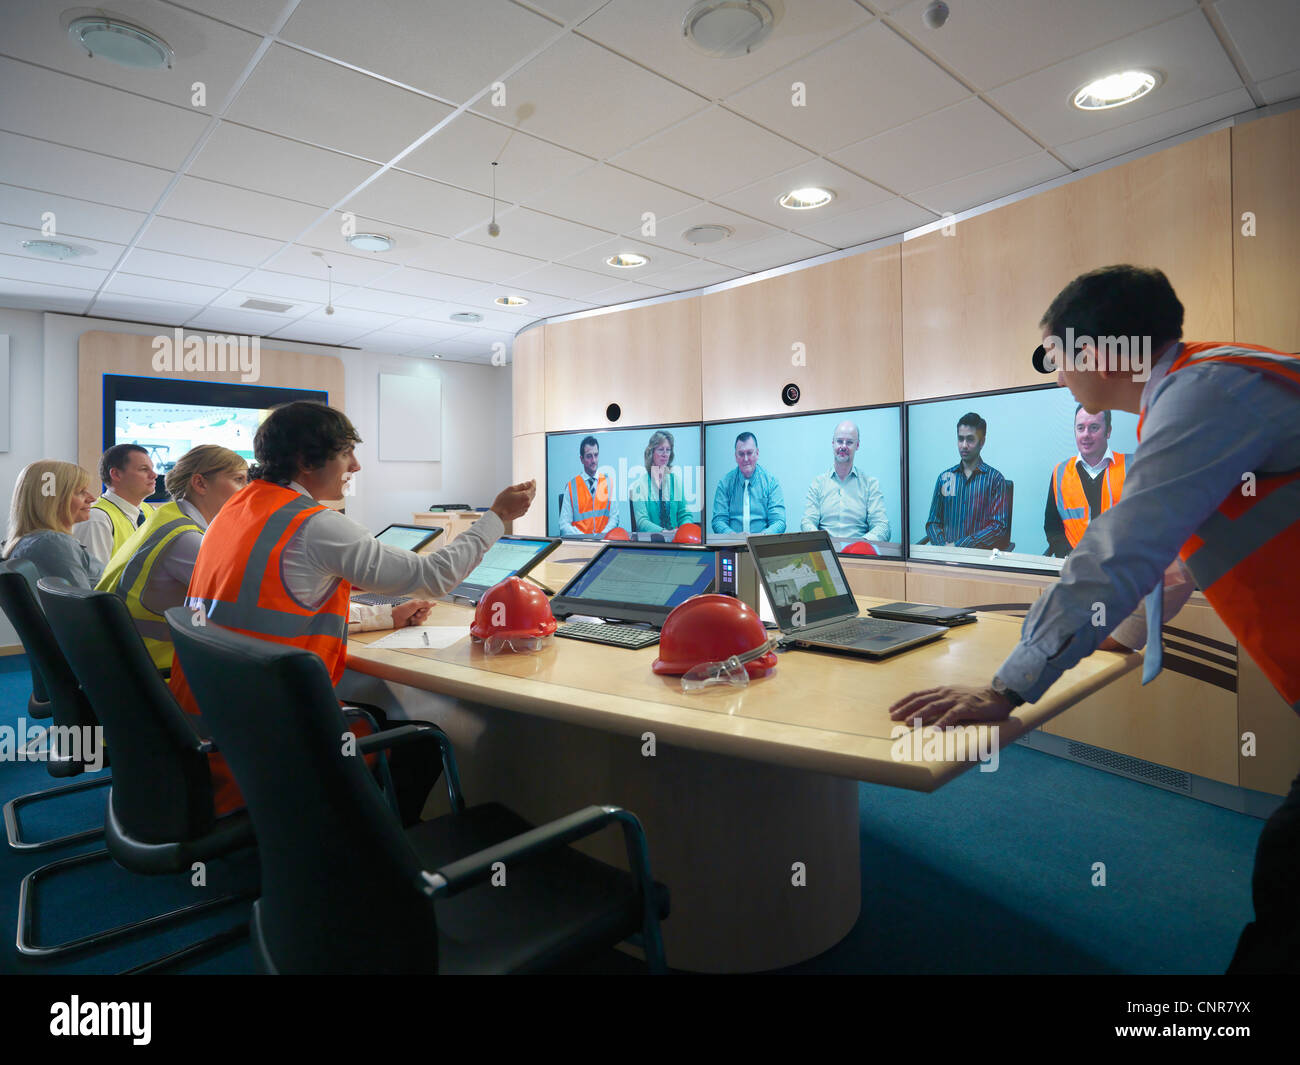 Construction workers in video conference - Stock Image